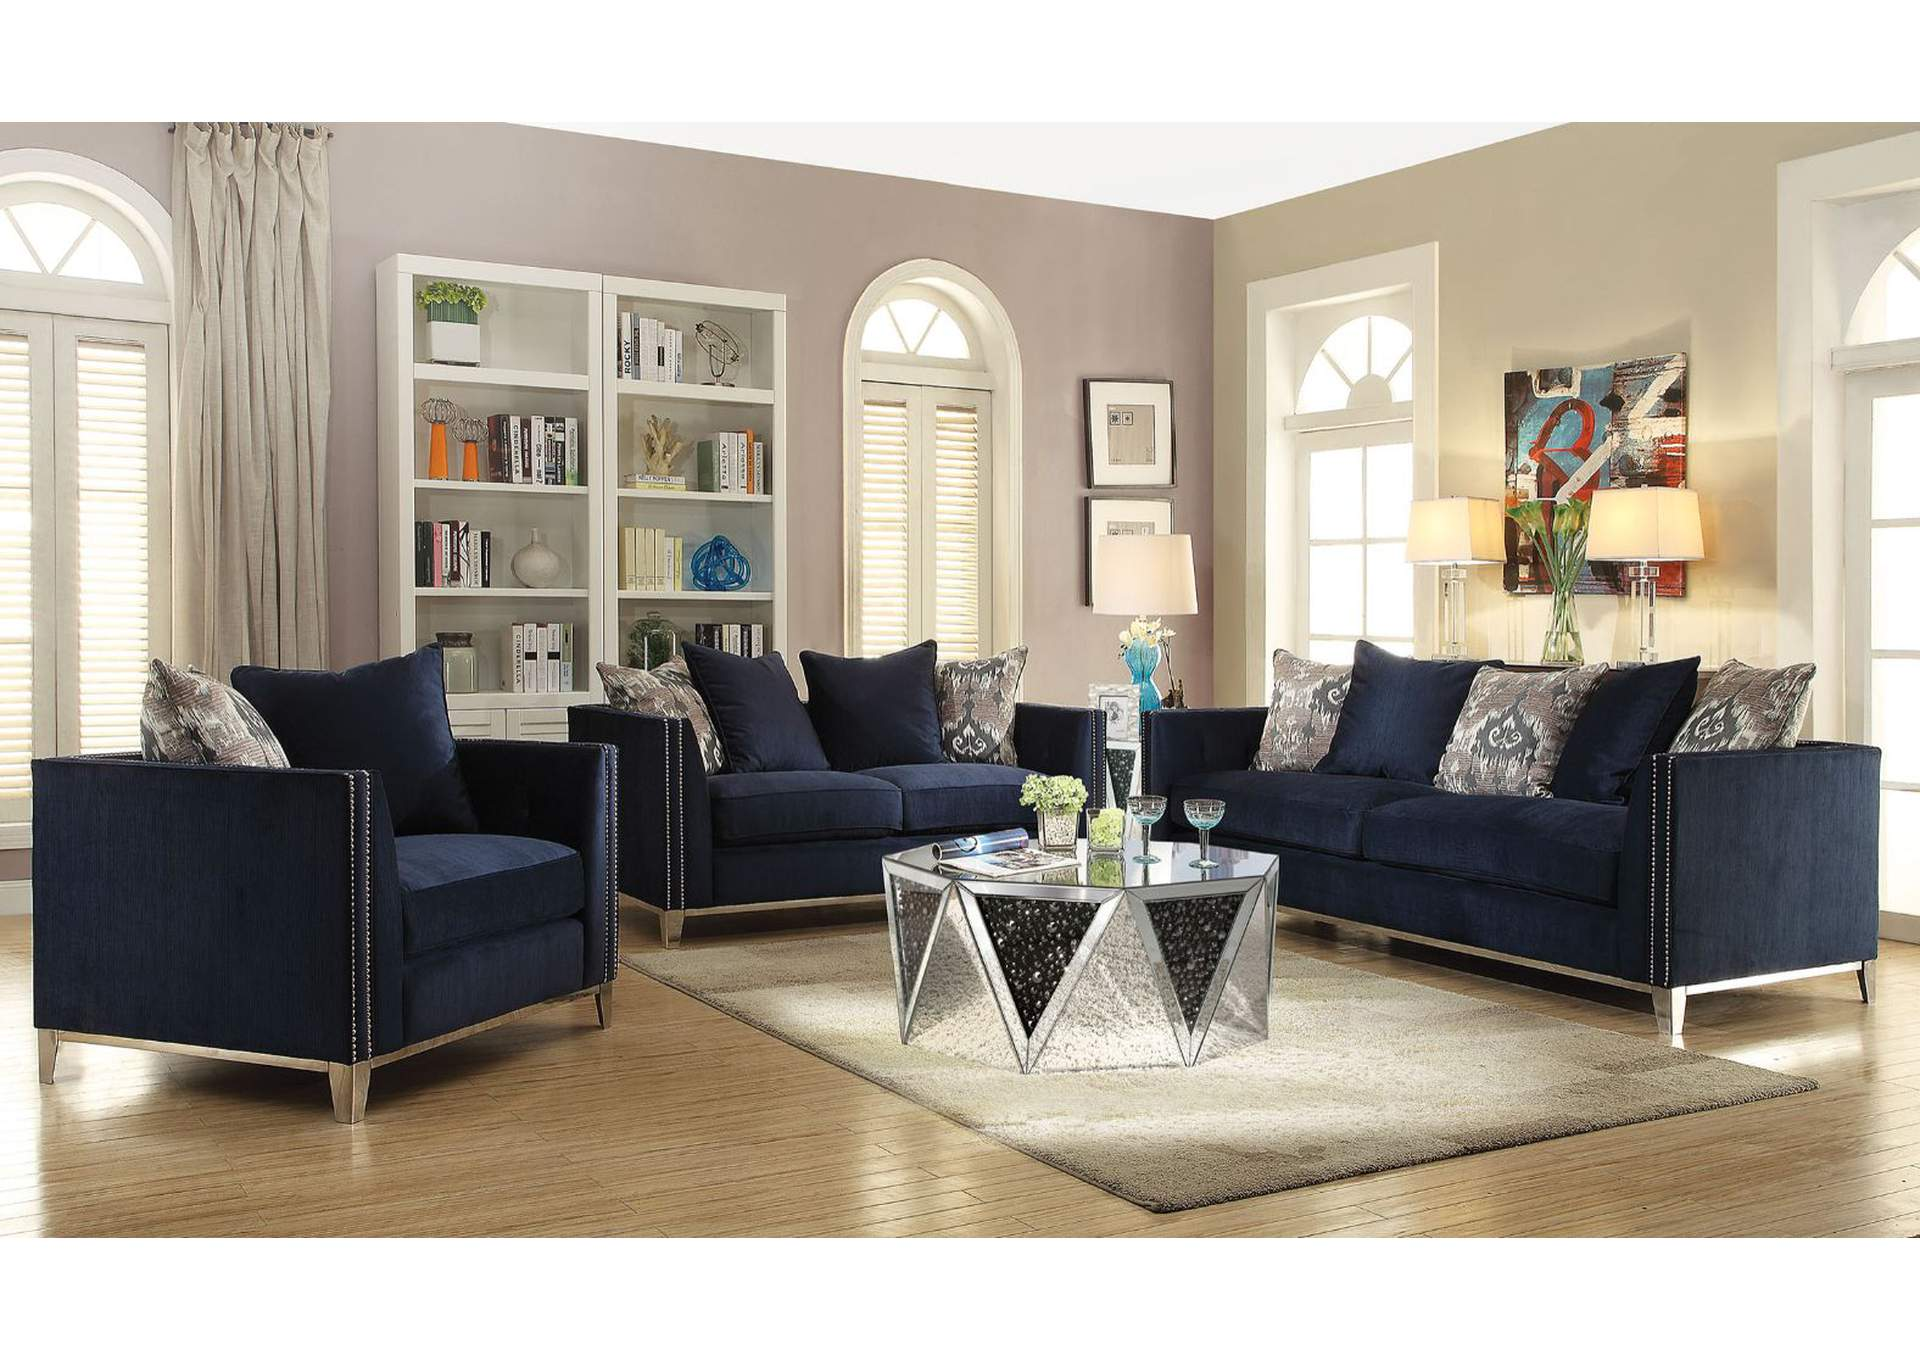 Phaedra Blue Fabric Sofa,Acme